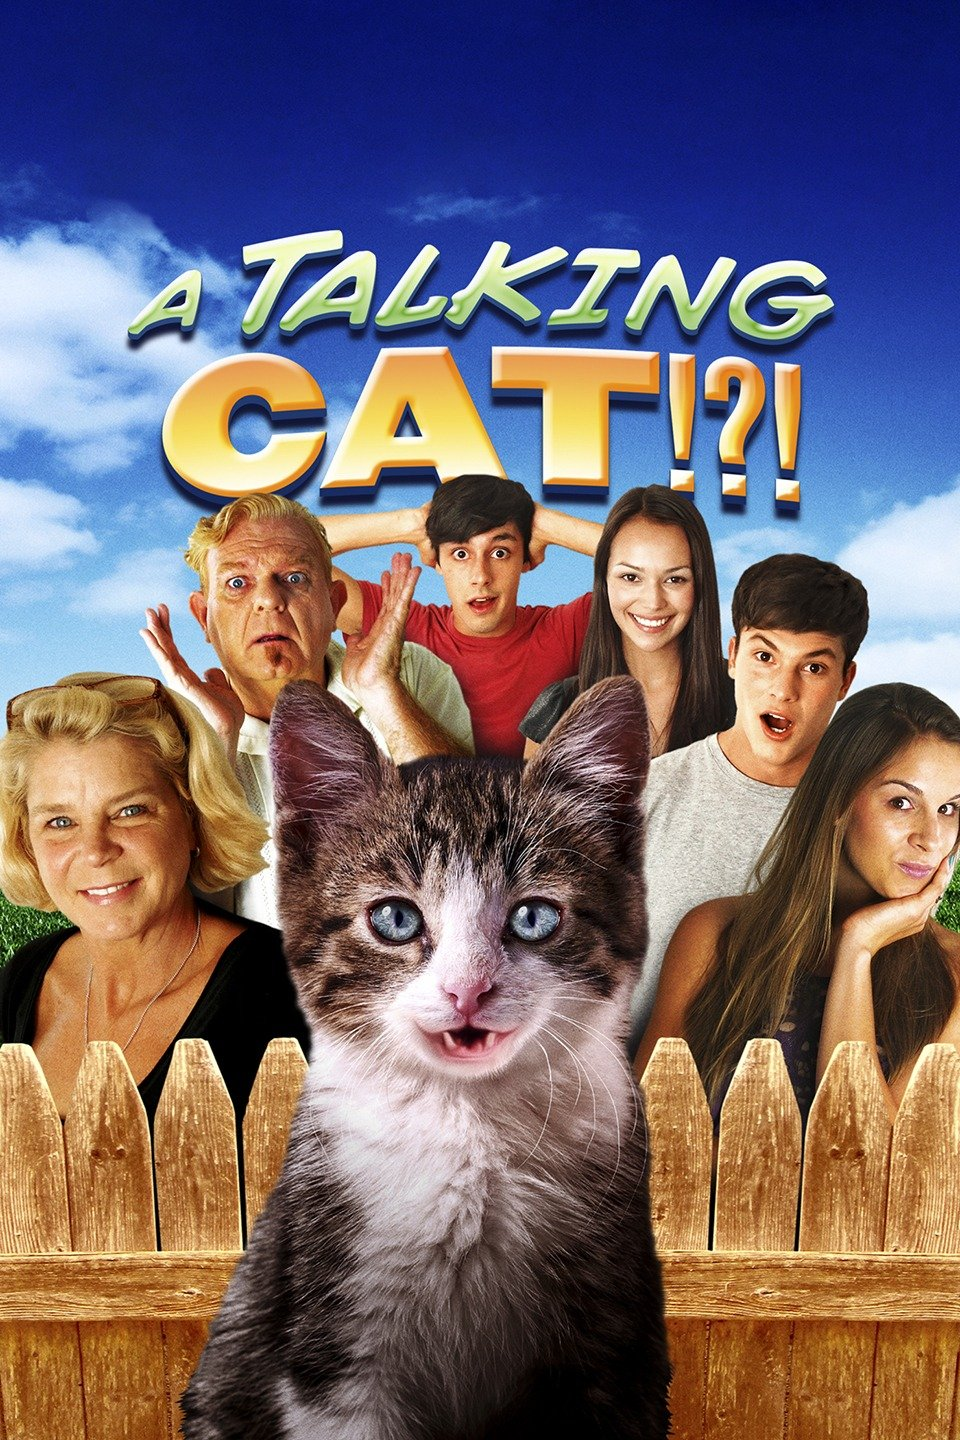 A Talking Cat?! A Story About Kitty Love